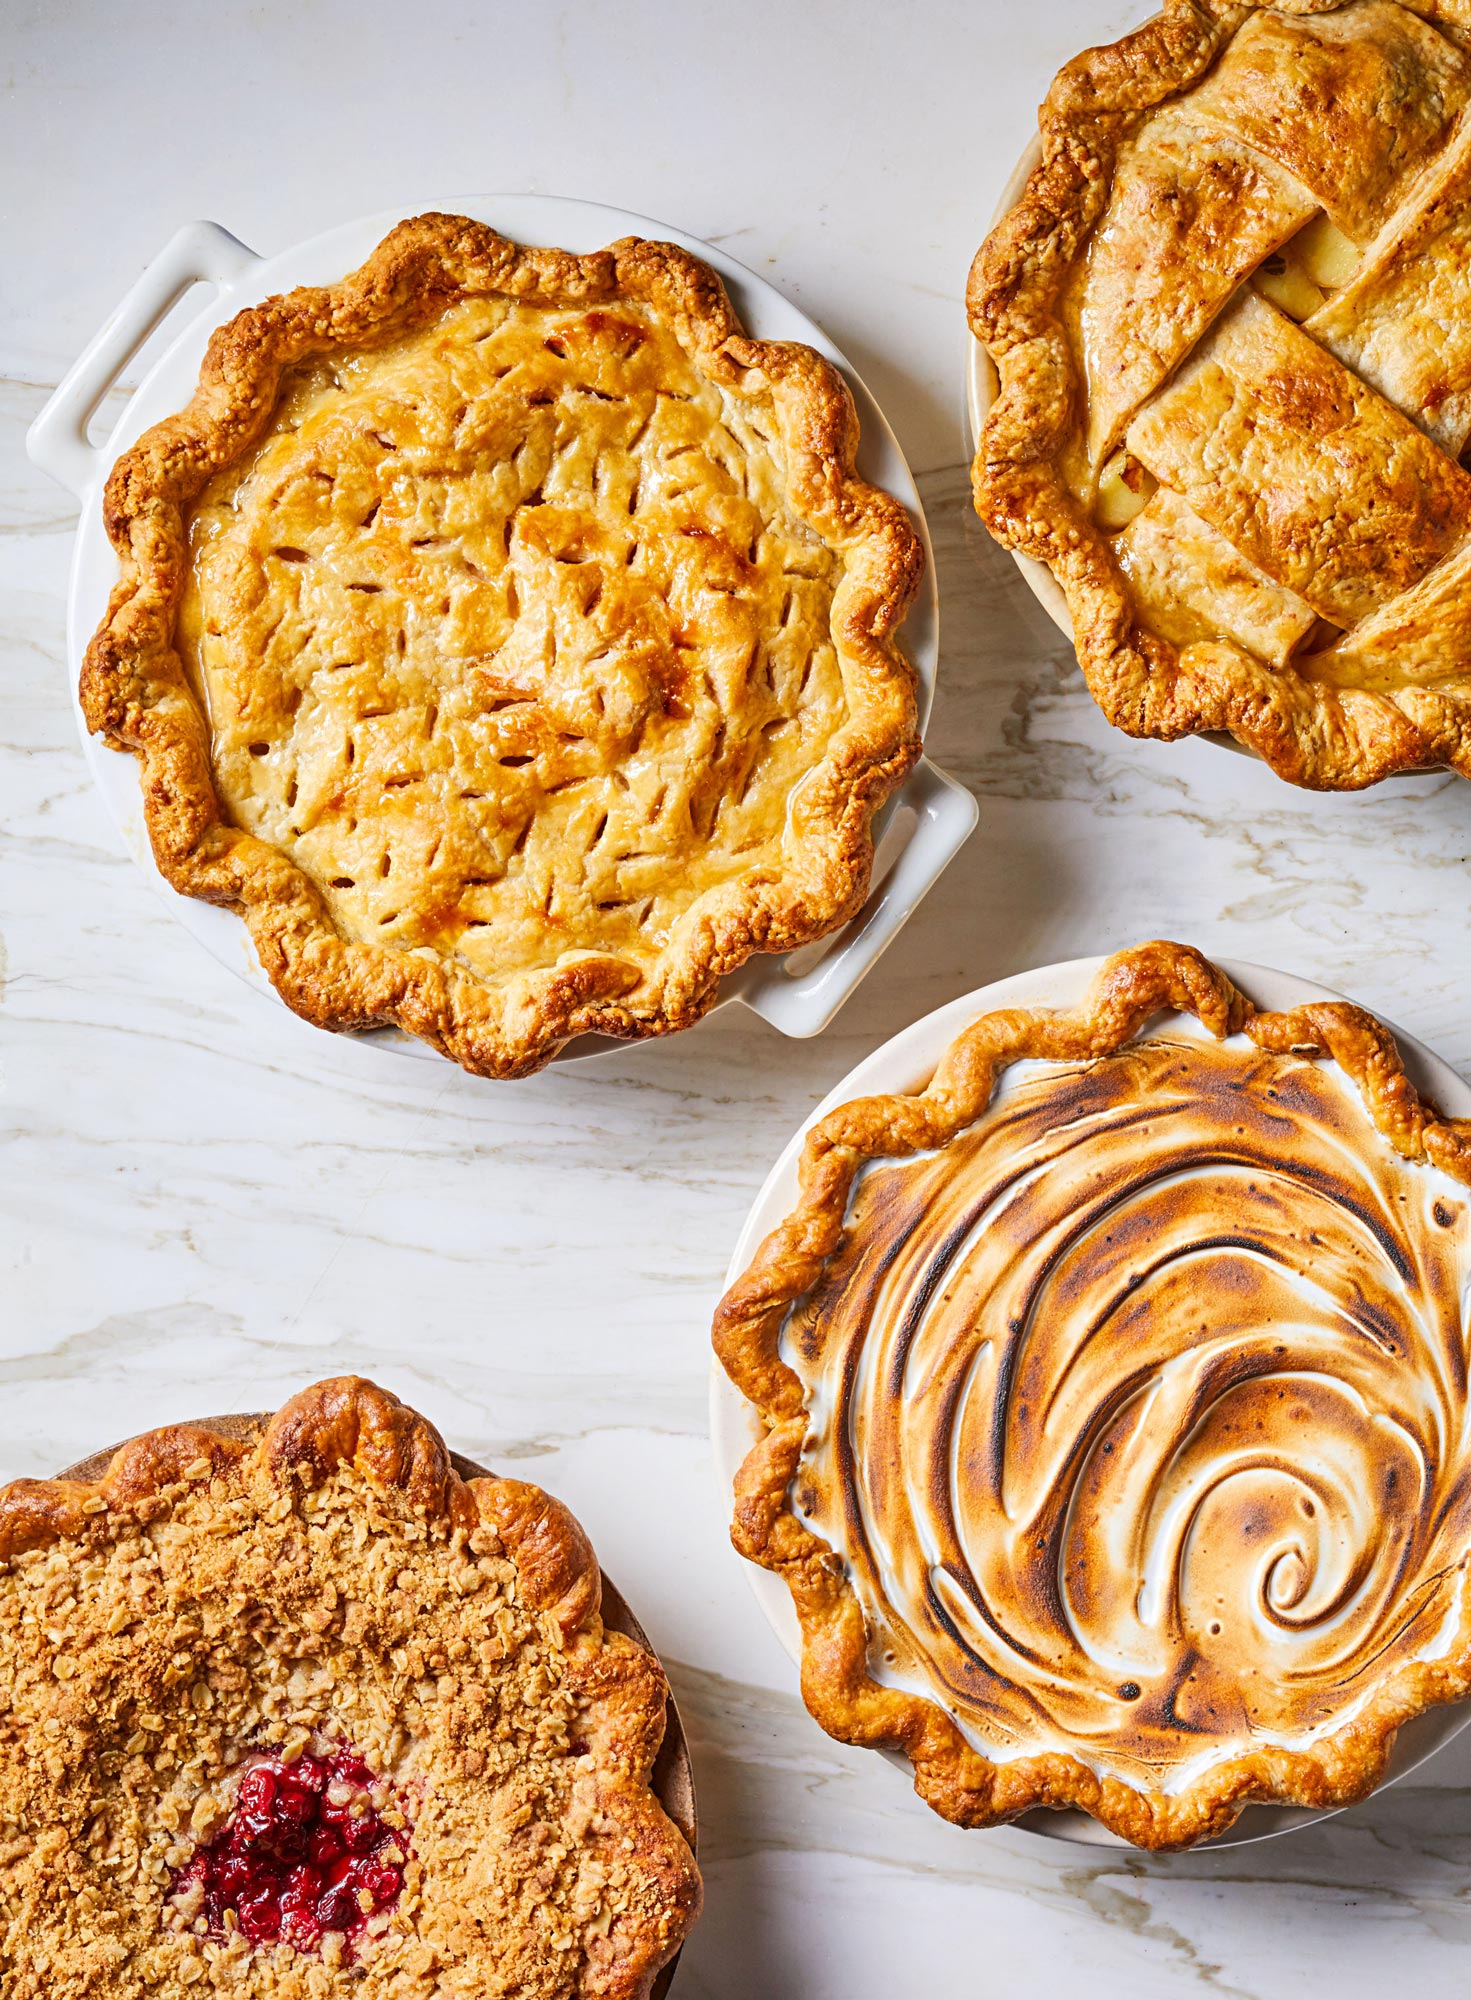 Classic holiday pies, reimagined